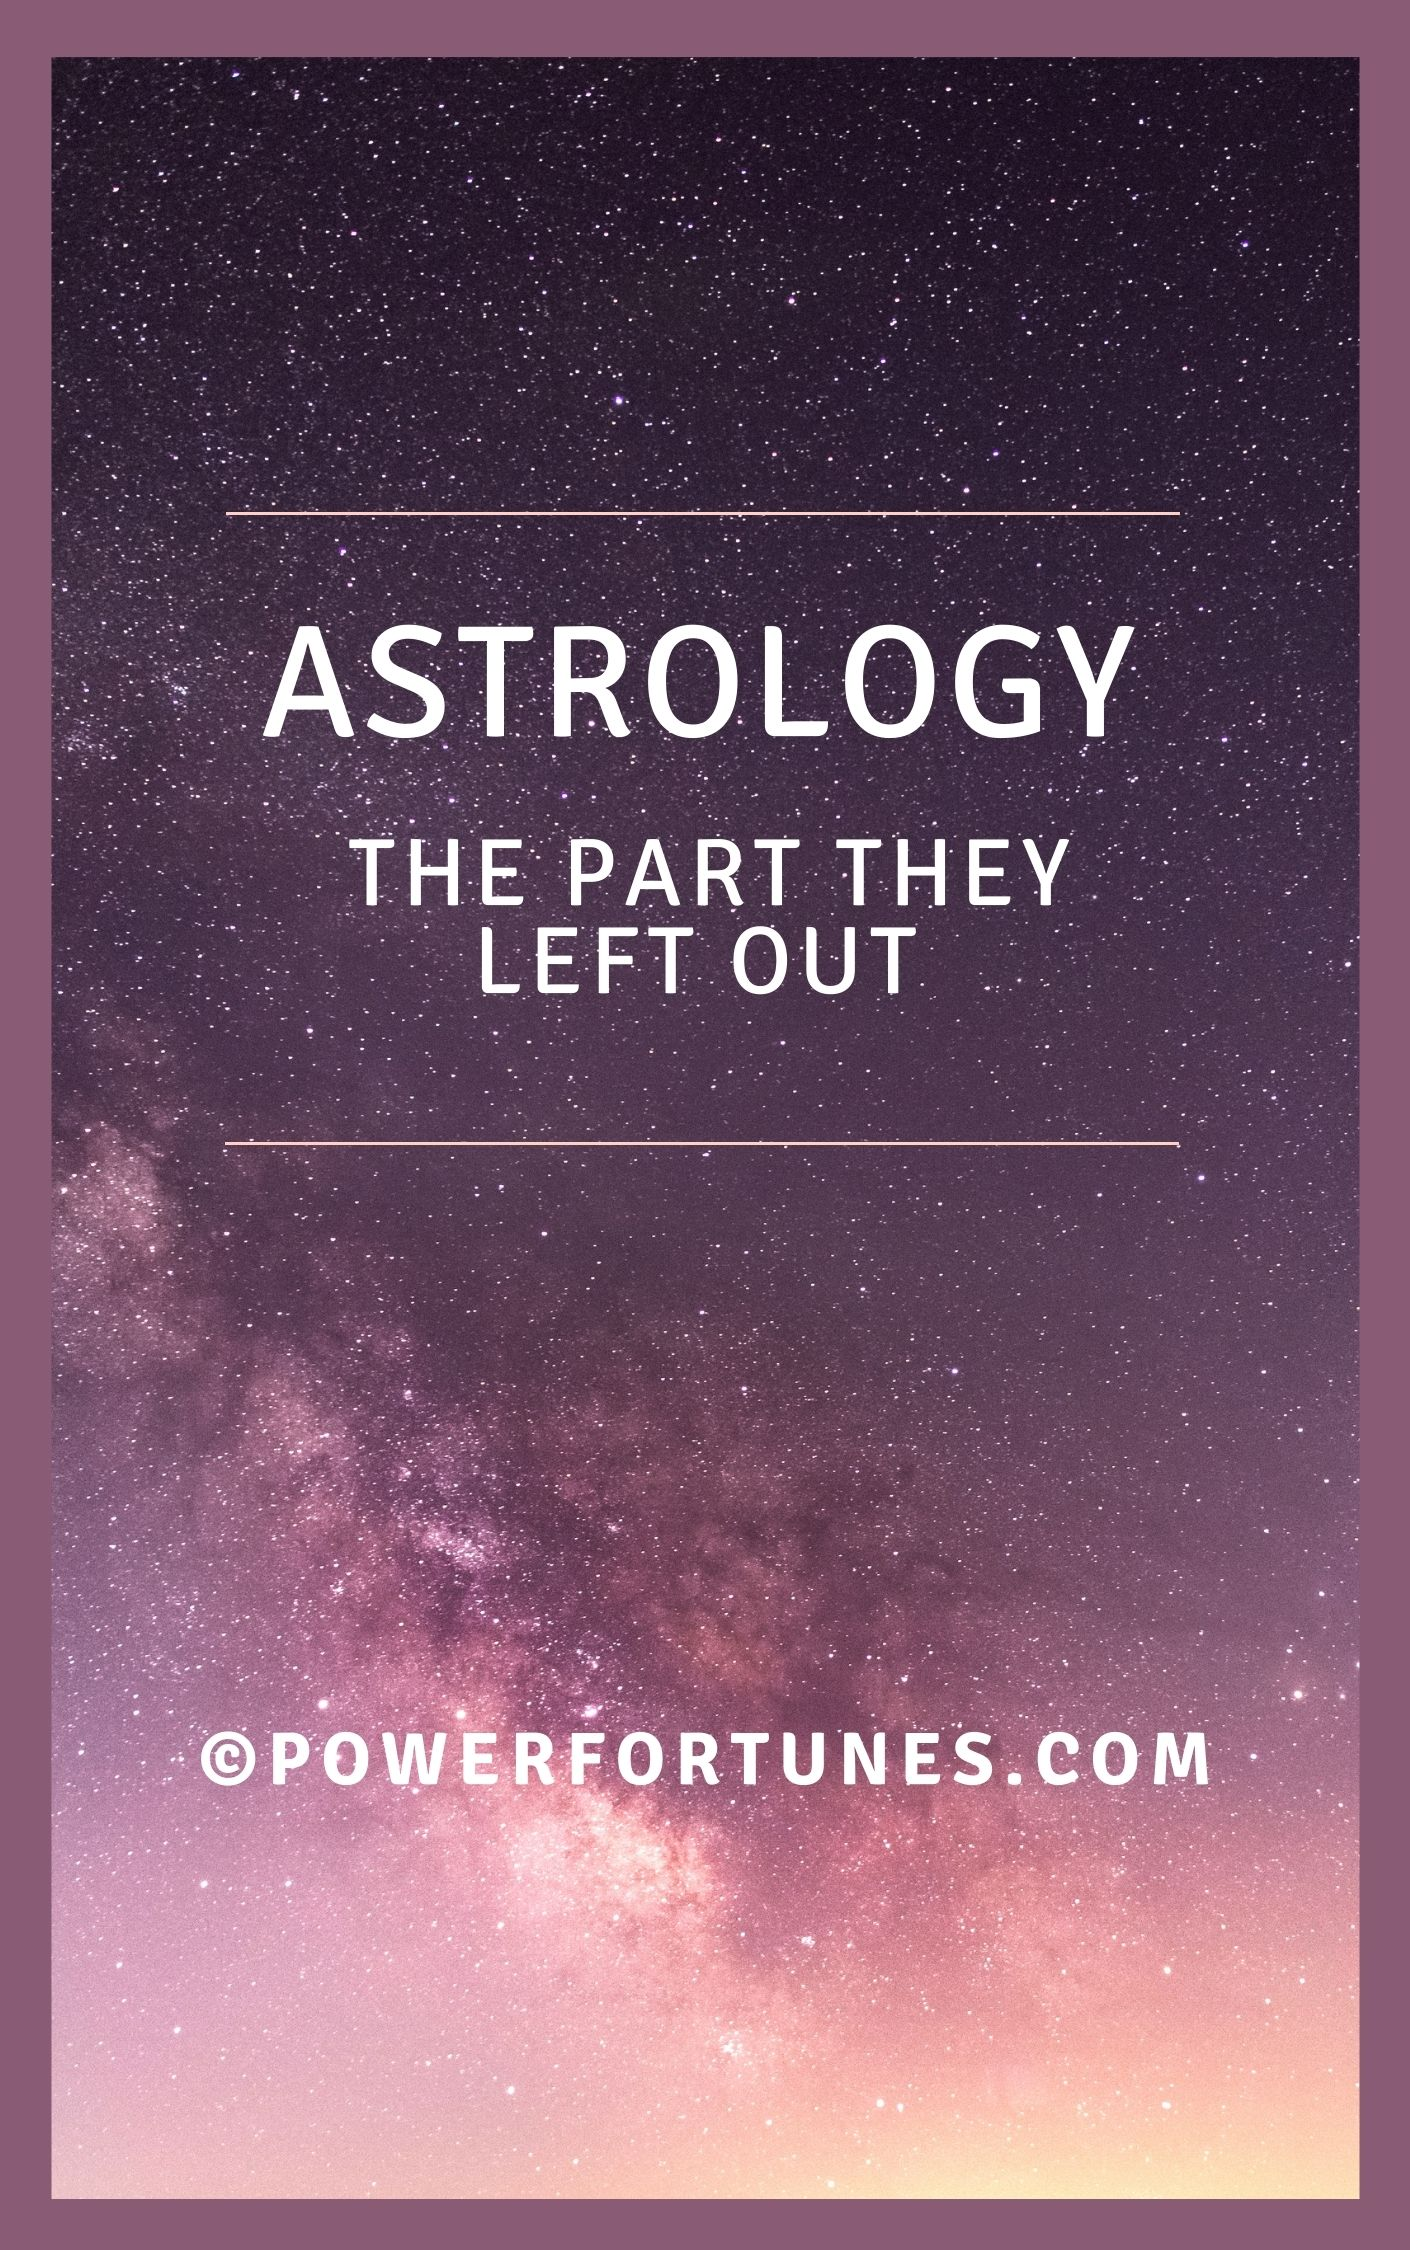 eBook, Astrology. The Part They Left Out.